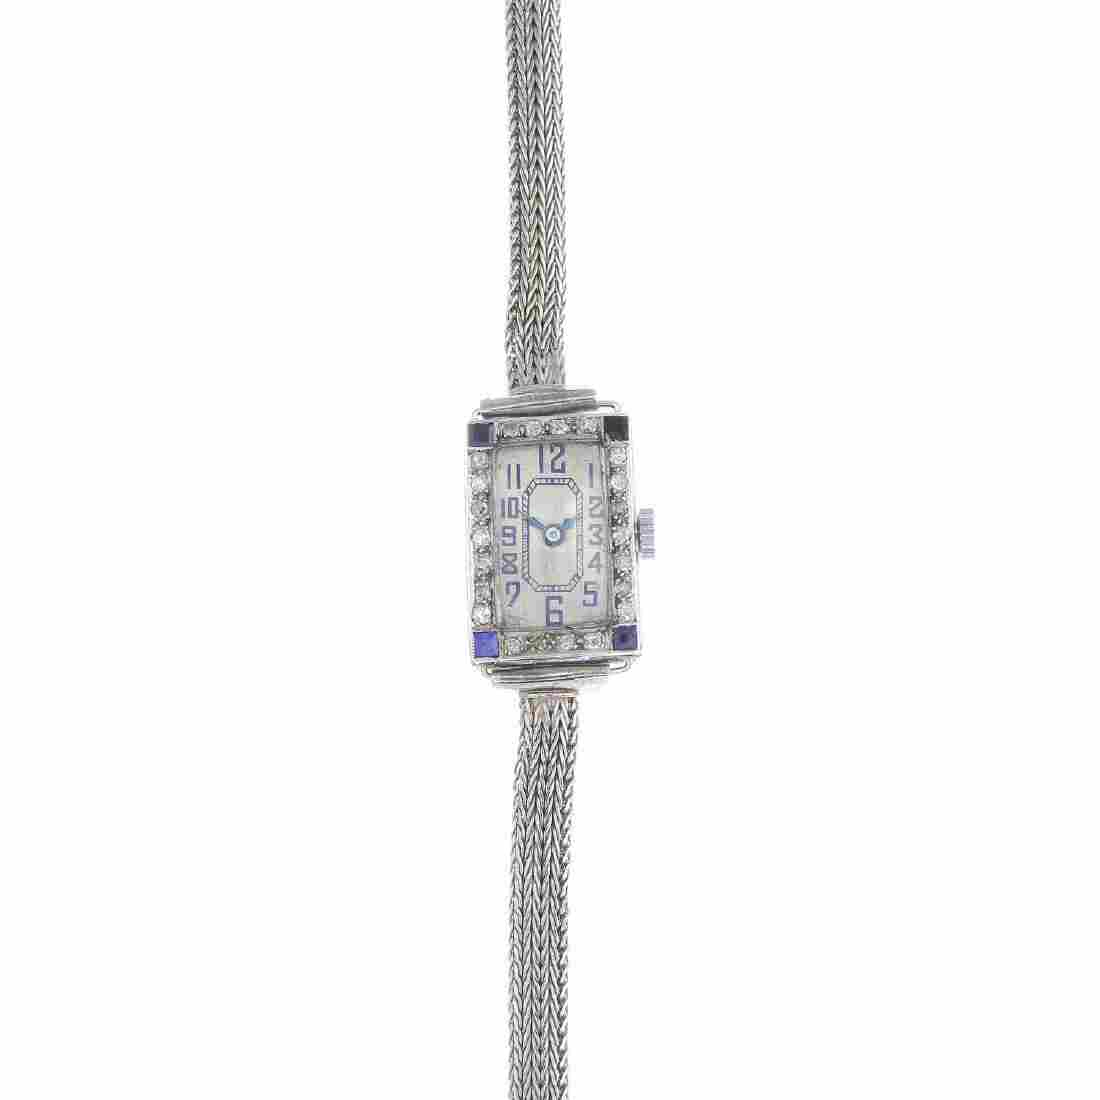 A mid 20th century diamond and sapphire cocktail watch.